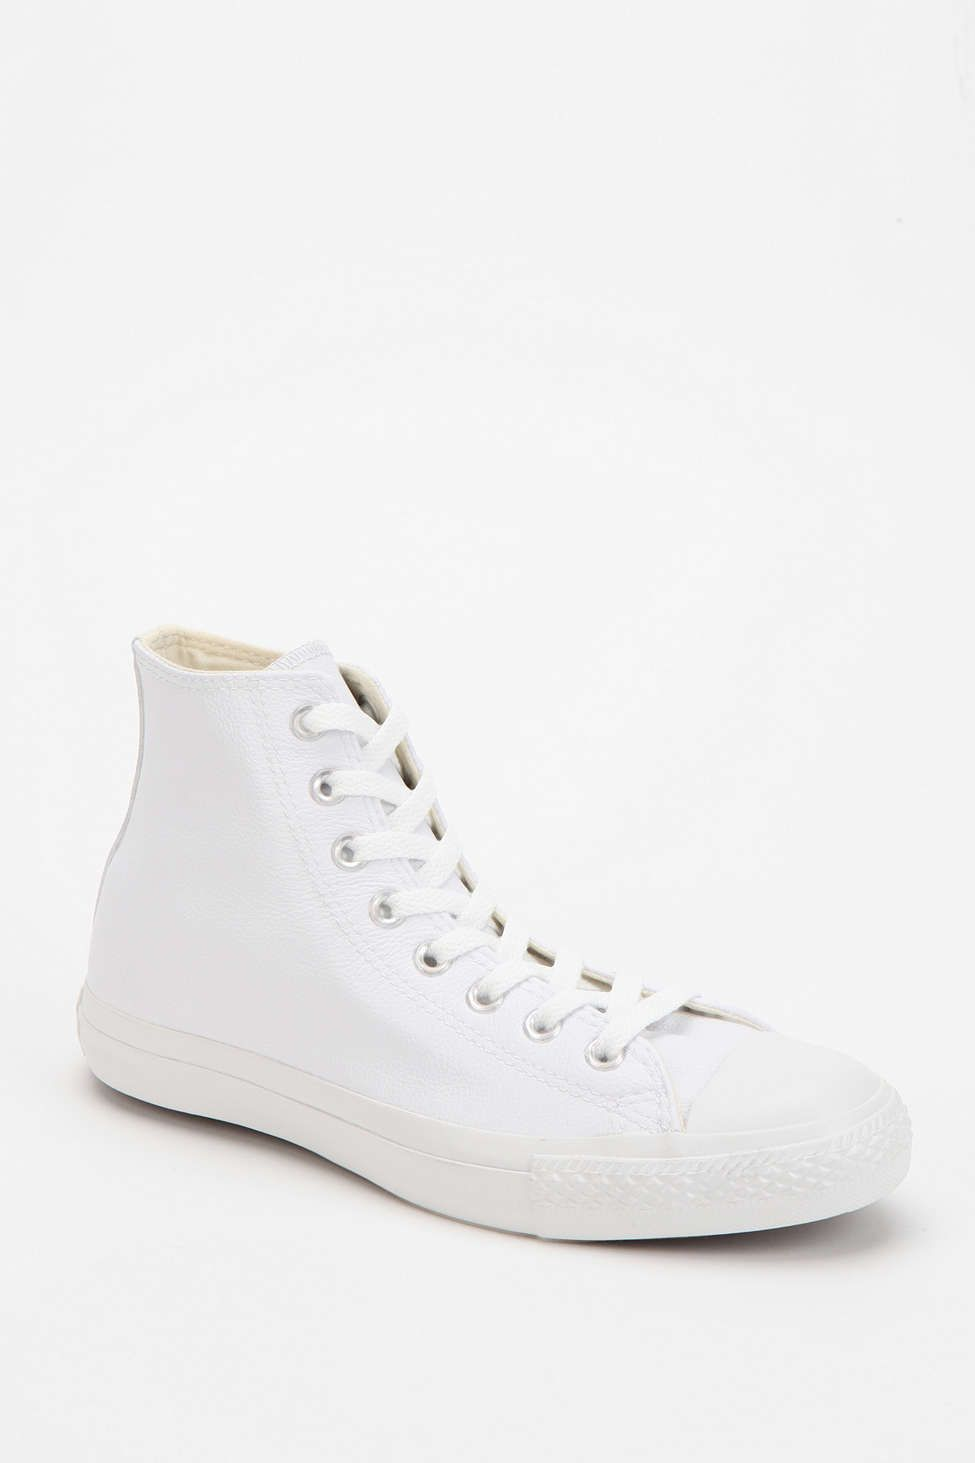 7d8248c4c770 Converse Chuck Taylor All Star Leather High-Top Women s Sneaker ...